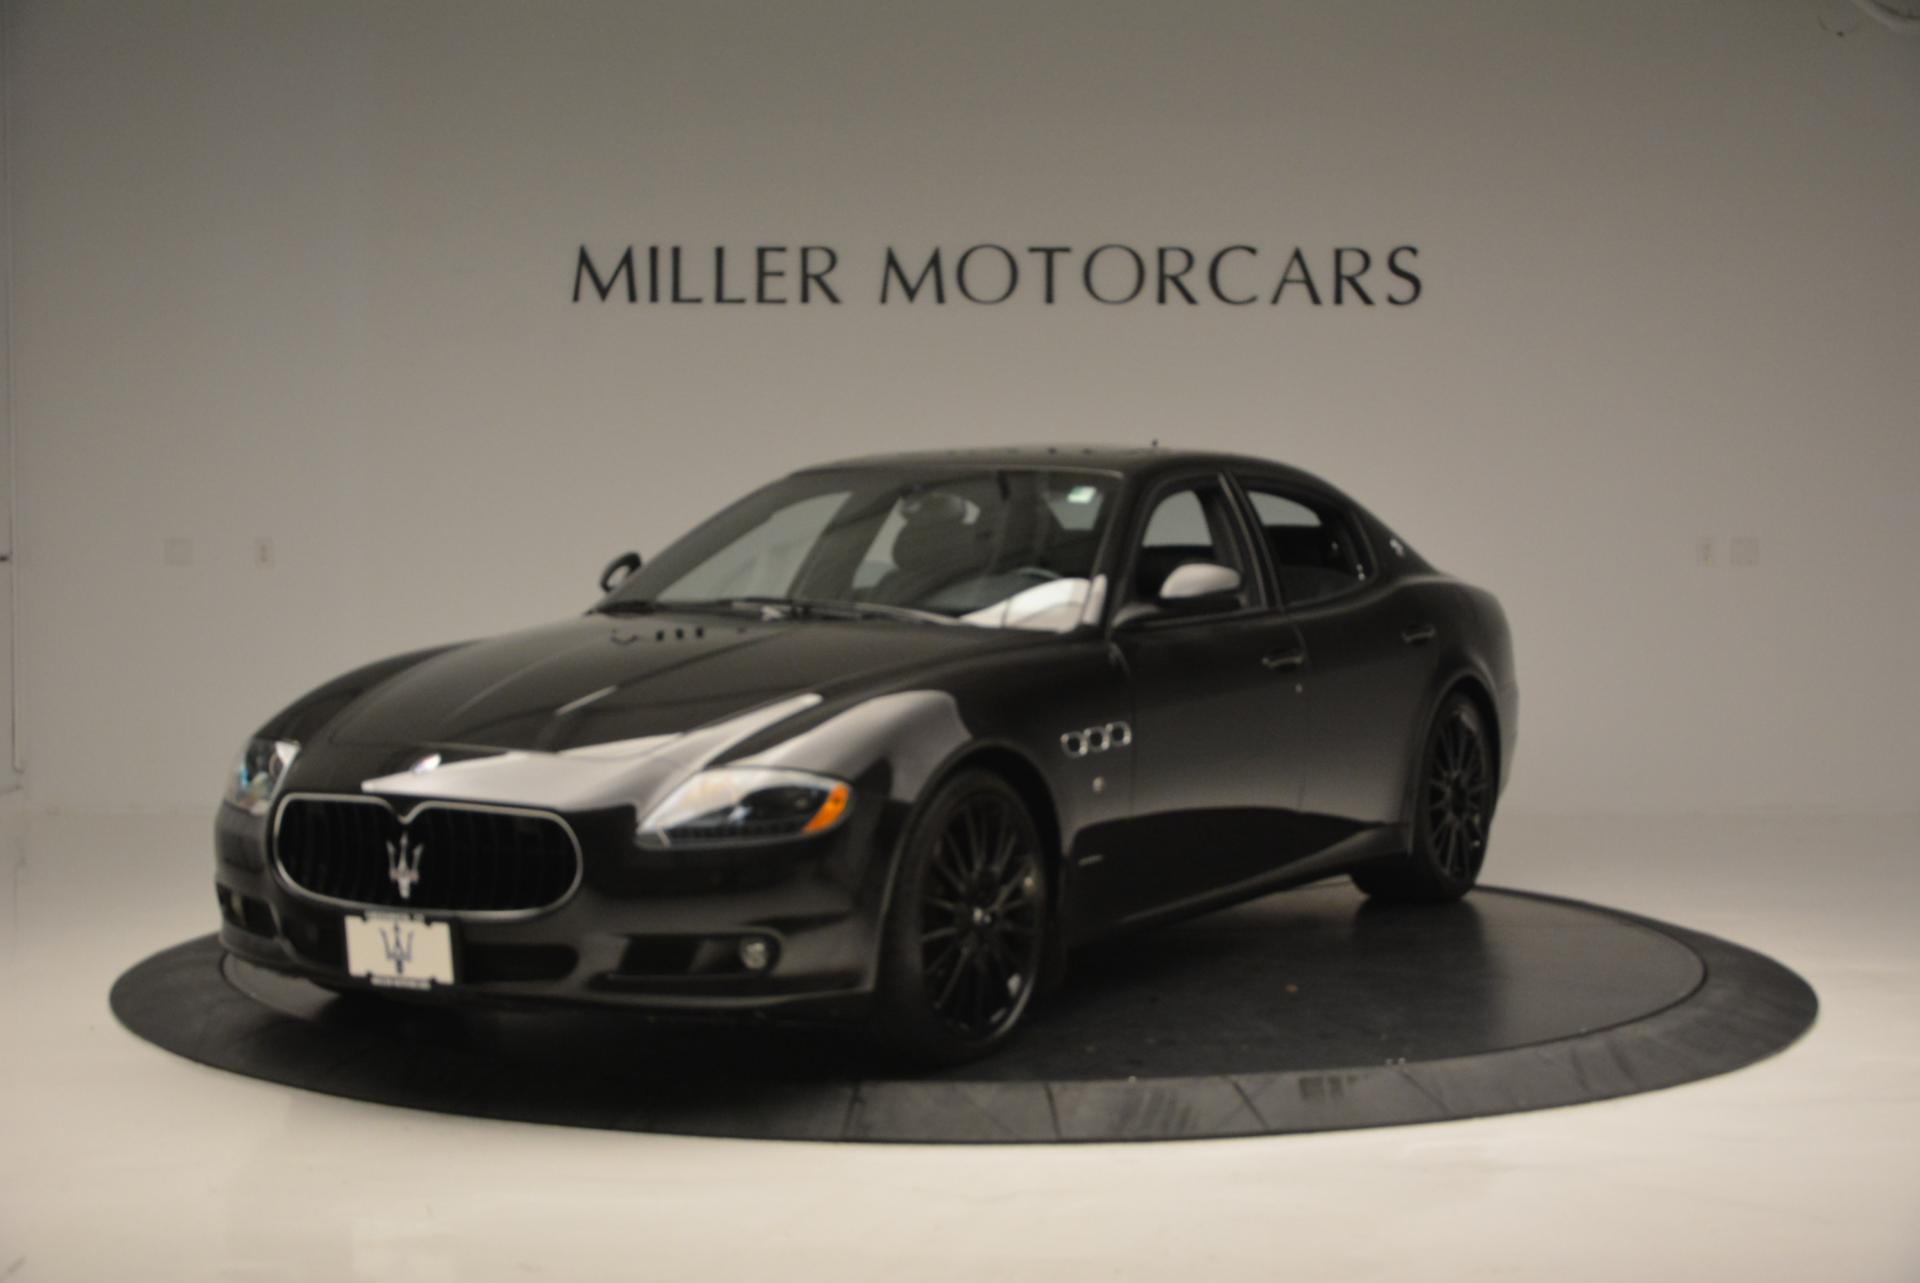 Used 2011 Maserati Quattroporte Sport GT S for sale Sold at McLaren Greenwich in Greenwich CT 06830 1